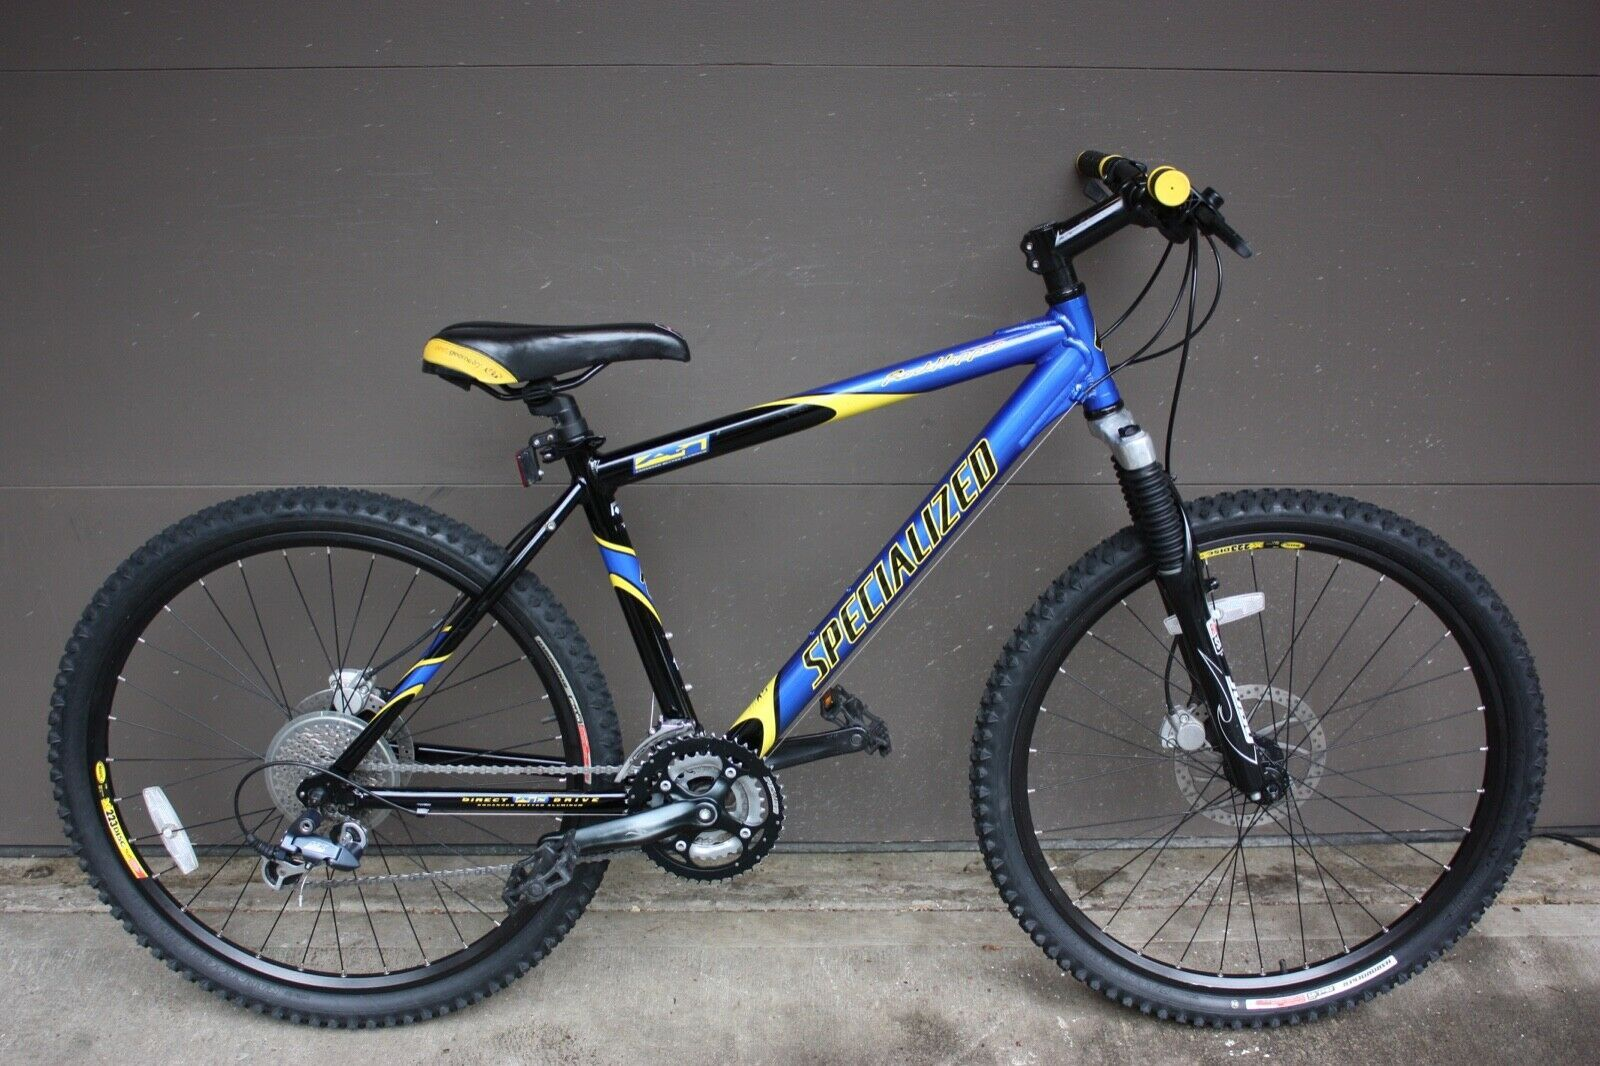 17 Specialized Rockhopper Comp Mountain Bike In Amazing Shape Mountain Bike Ideas Of Mountain Bike Mountai Mtb Bike Mountain Biking Specialized Rockhopper